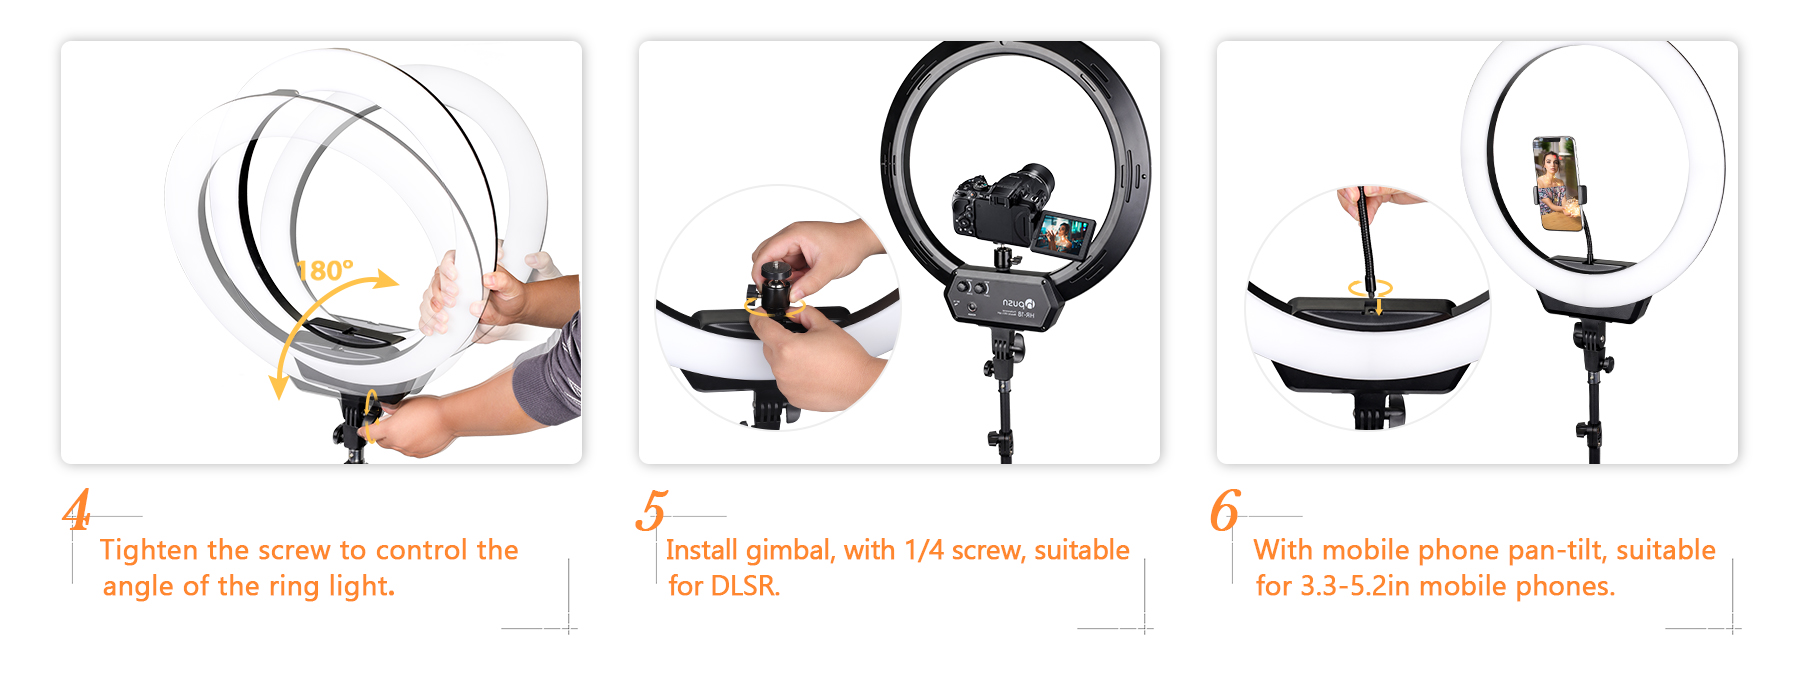 Hpusn HR-18 Ring Light Installation Instructions